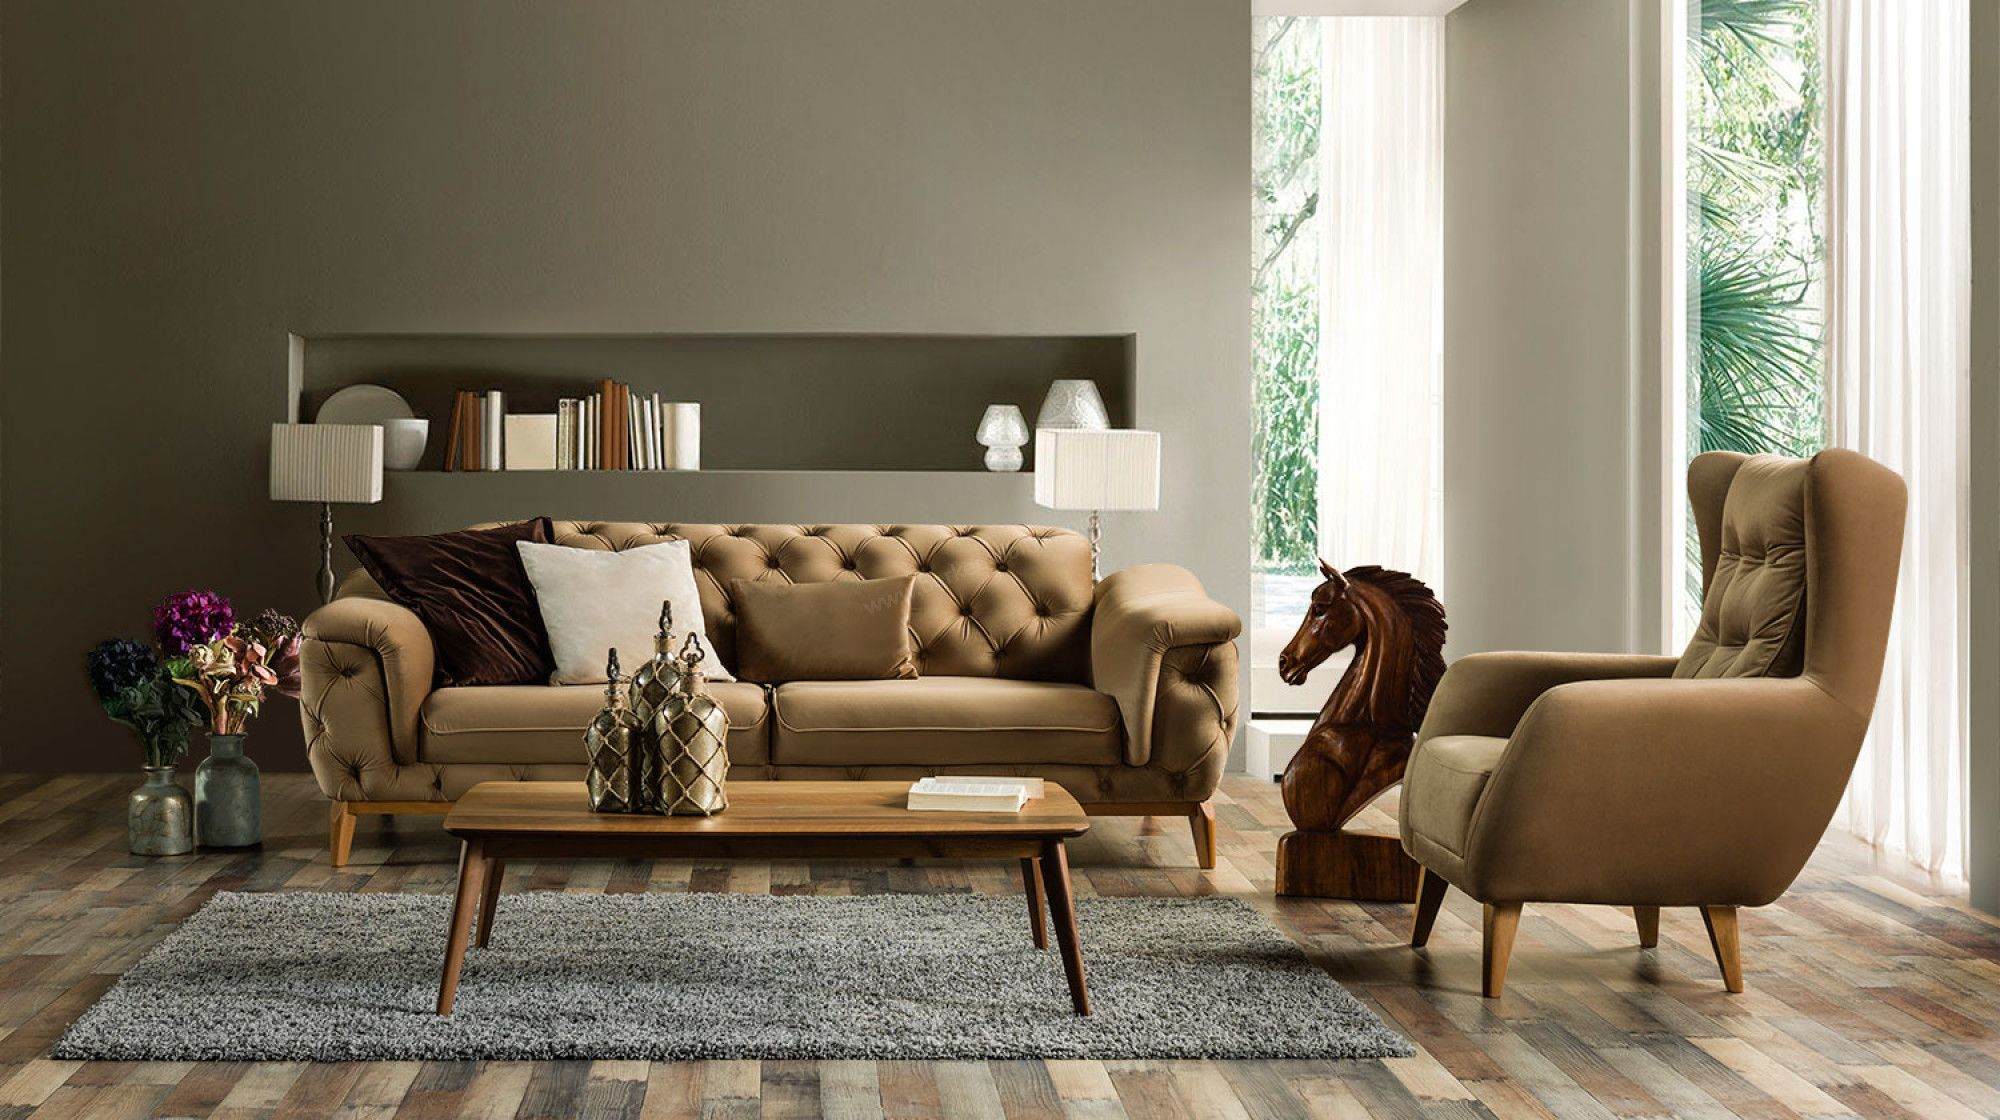 Thalia Koltuk Takimi Two Sofa Furniture Sofa Set Furniture